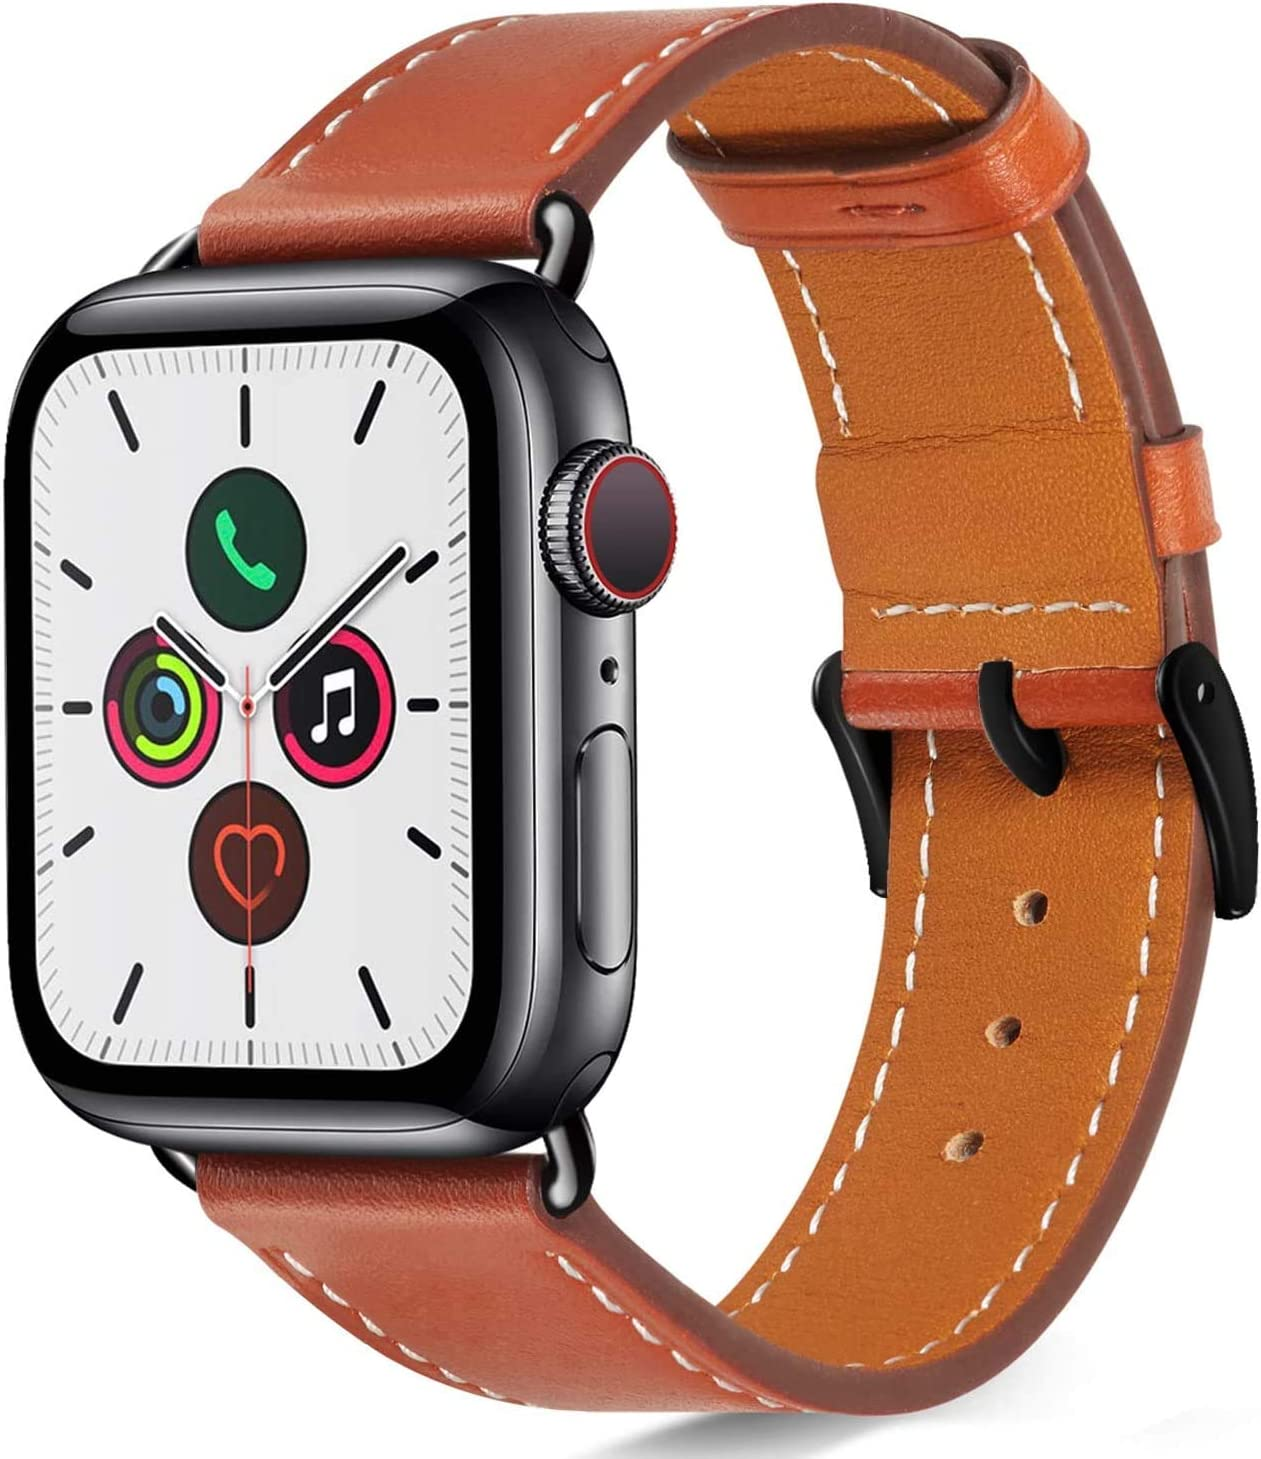 Compatible with Apple Watch Band 44mm 42mm for iWatch Bands Series 6 SE 5 4 3 2 1 Women Men, Pierre Case Durable Genuine Leather Replacement Strap, Adjustable Stainless Metal Clasp,Brown